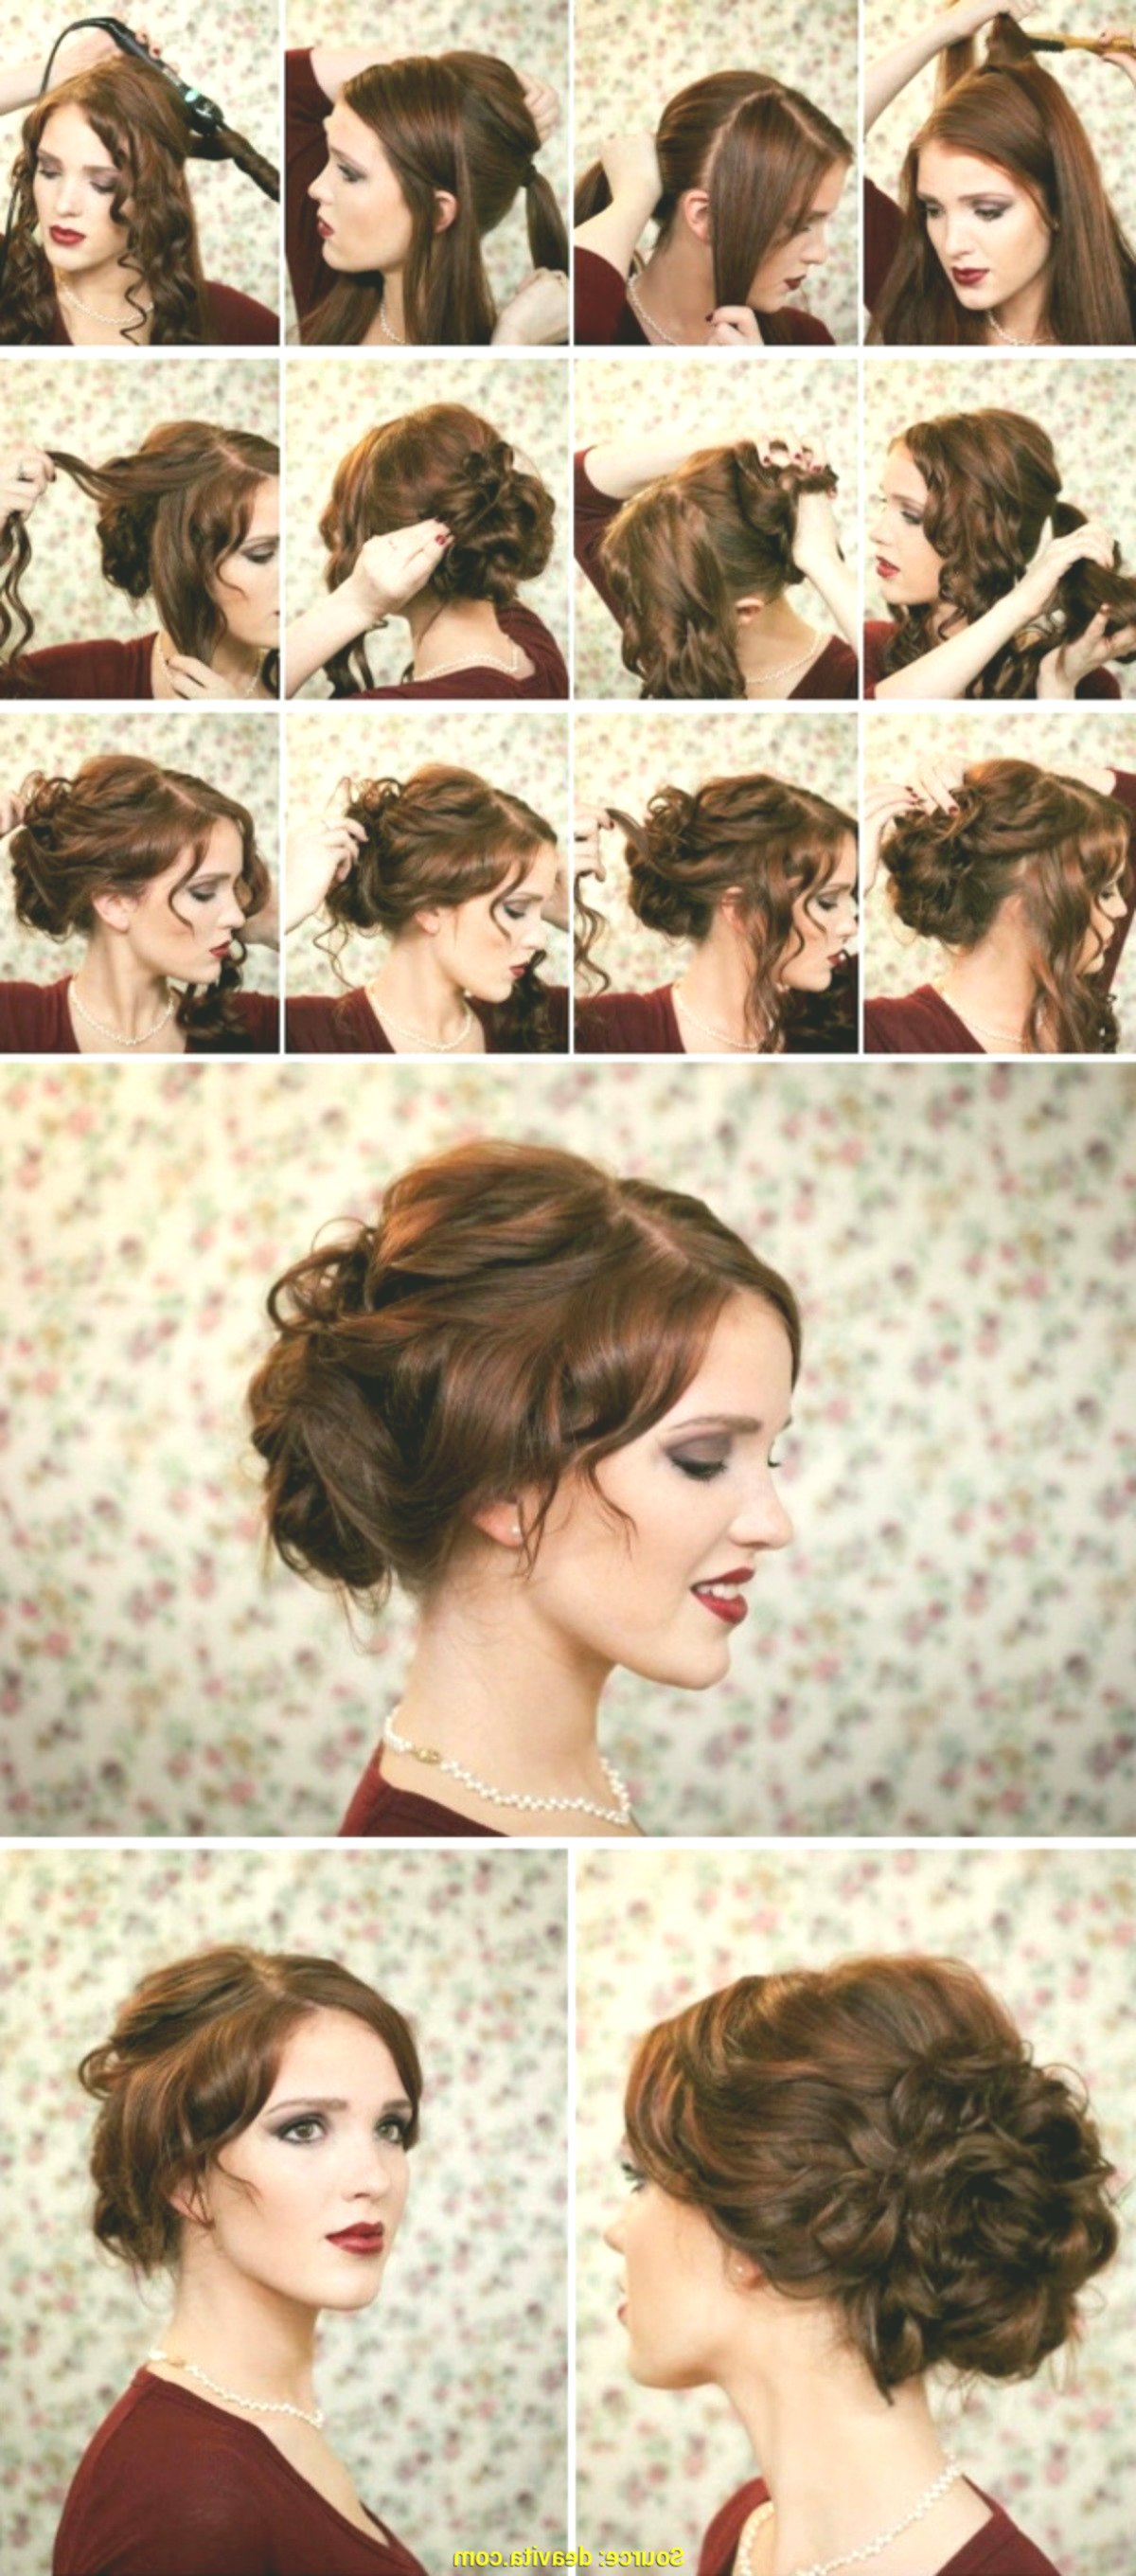 wonderfully breath-taking simple hairstyles for everyday life decoration-Top Simple Hairstyles For Daily Life Model